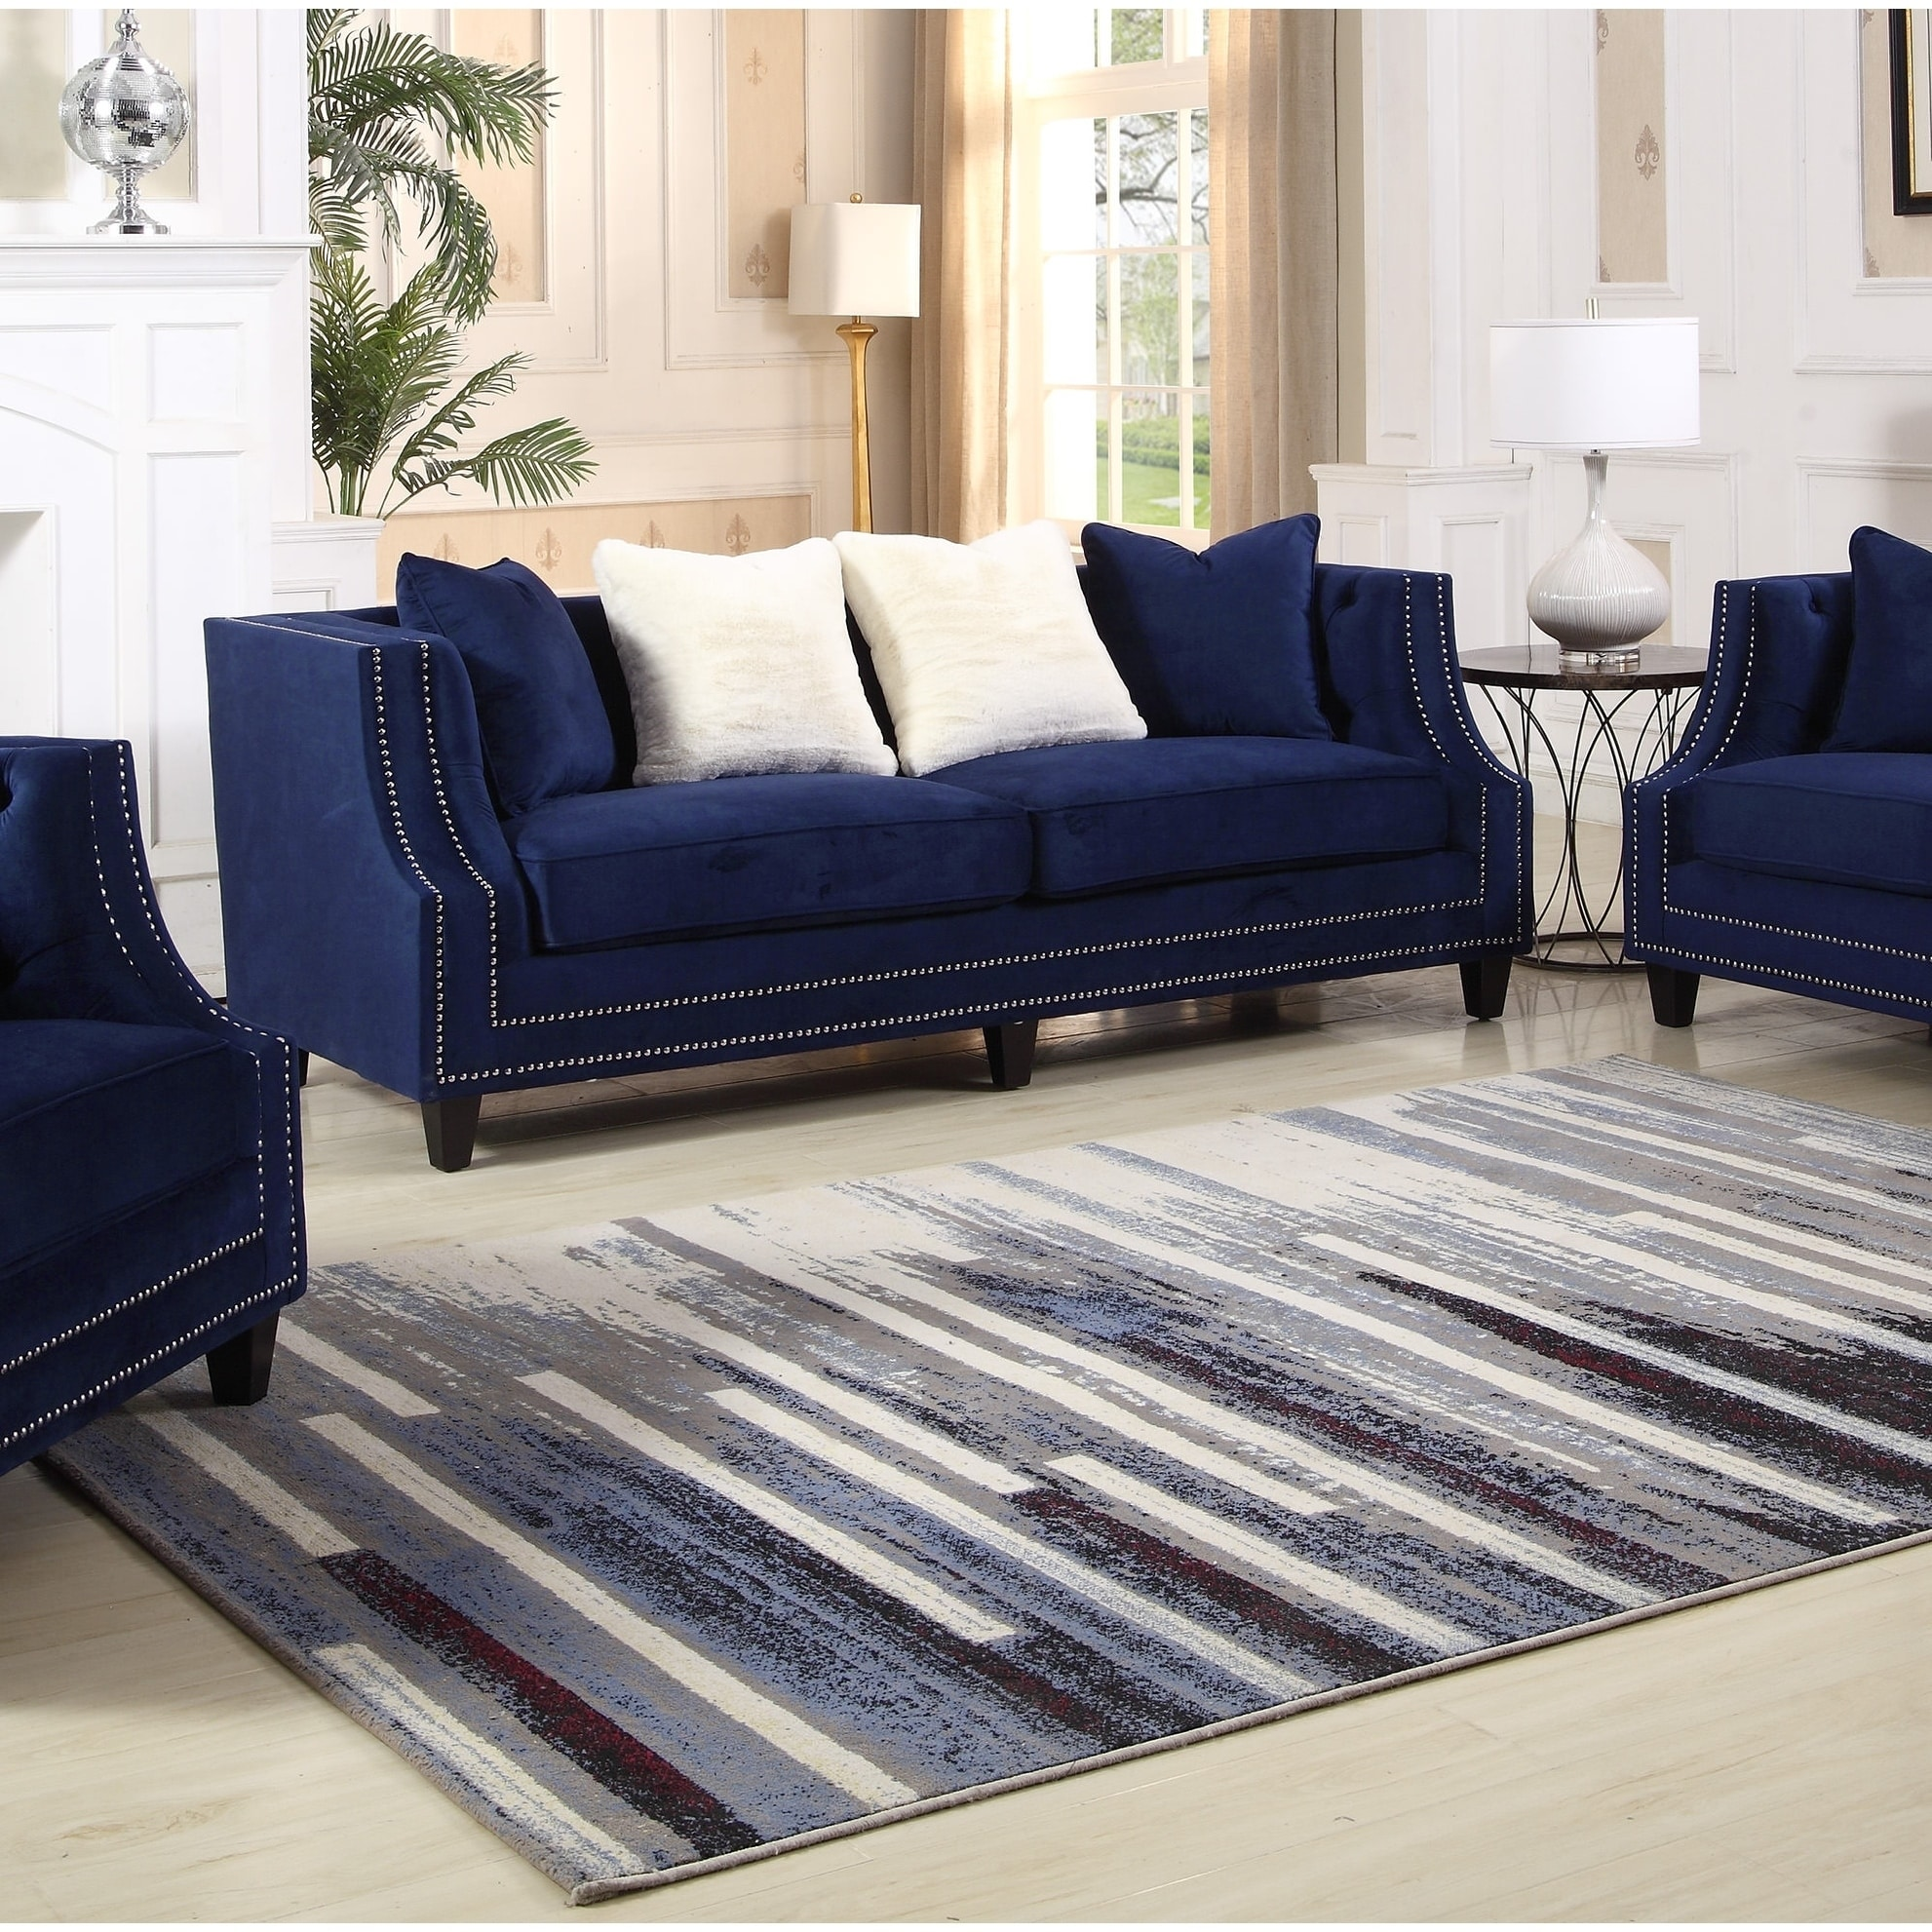 Elegant Best Master Furniture Hampstead Sofa (Blue) Furniture Outlet, Bed Furniture,  Online Furniture